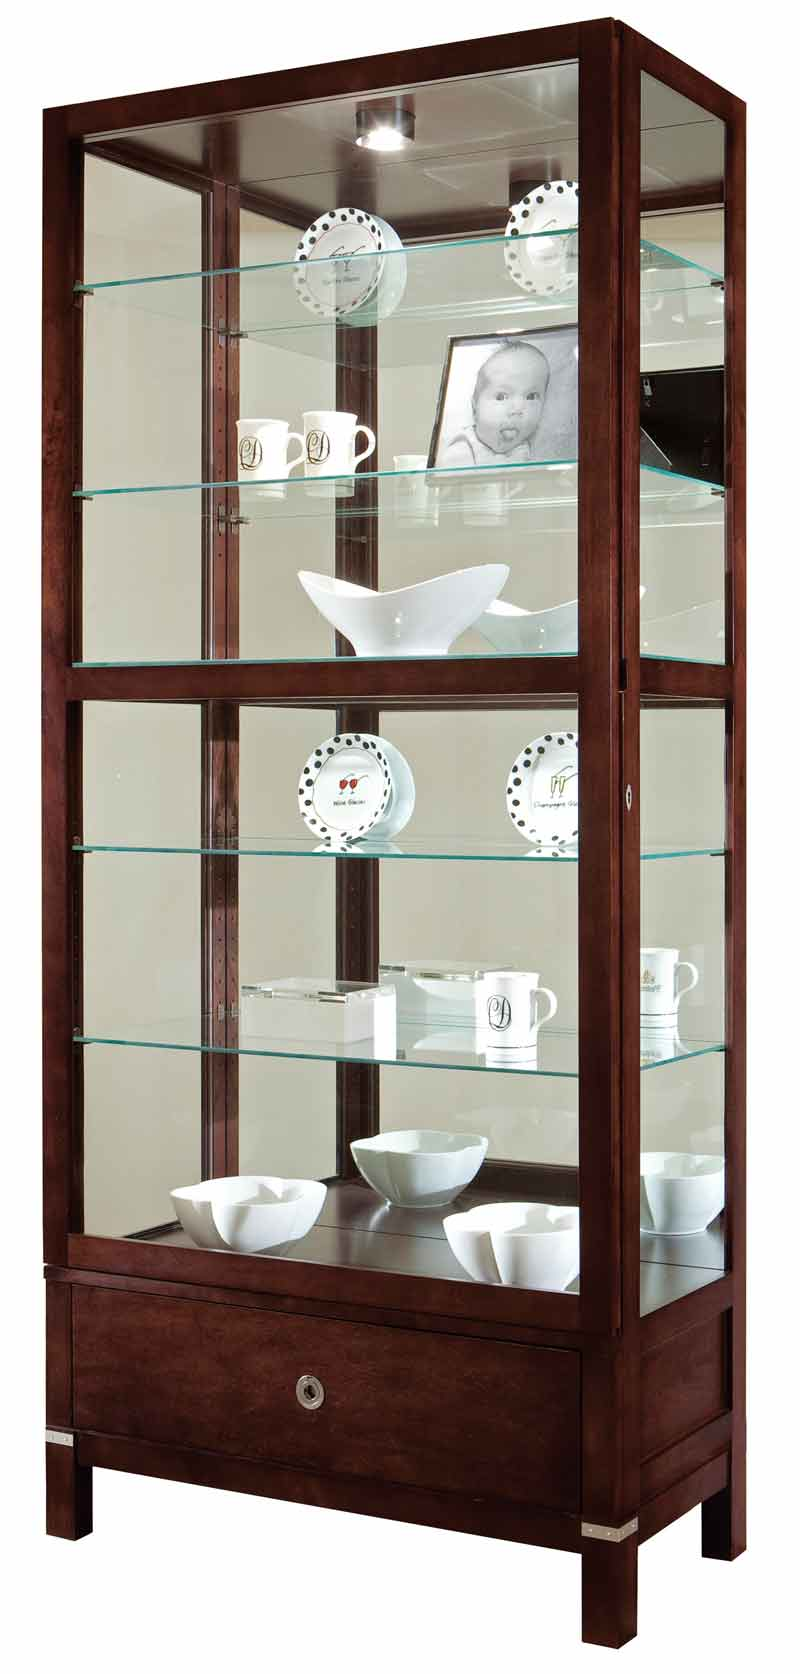 Painted Finish Curio Cabinets at Discounts and Free Shipping